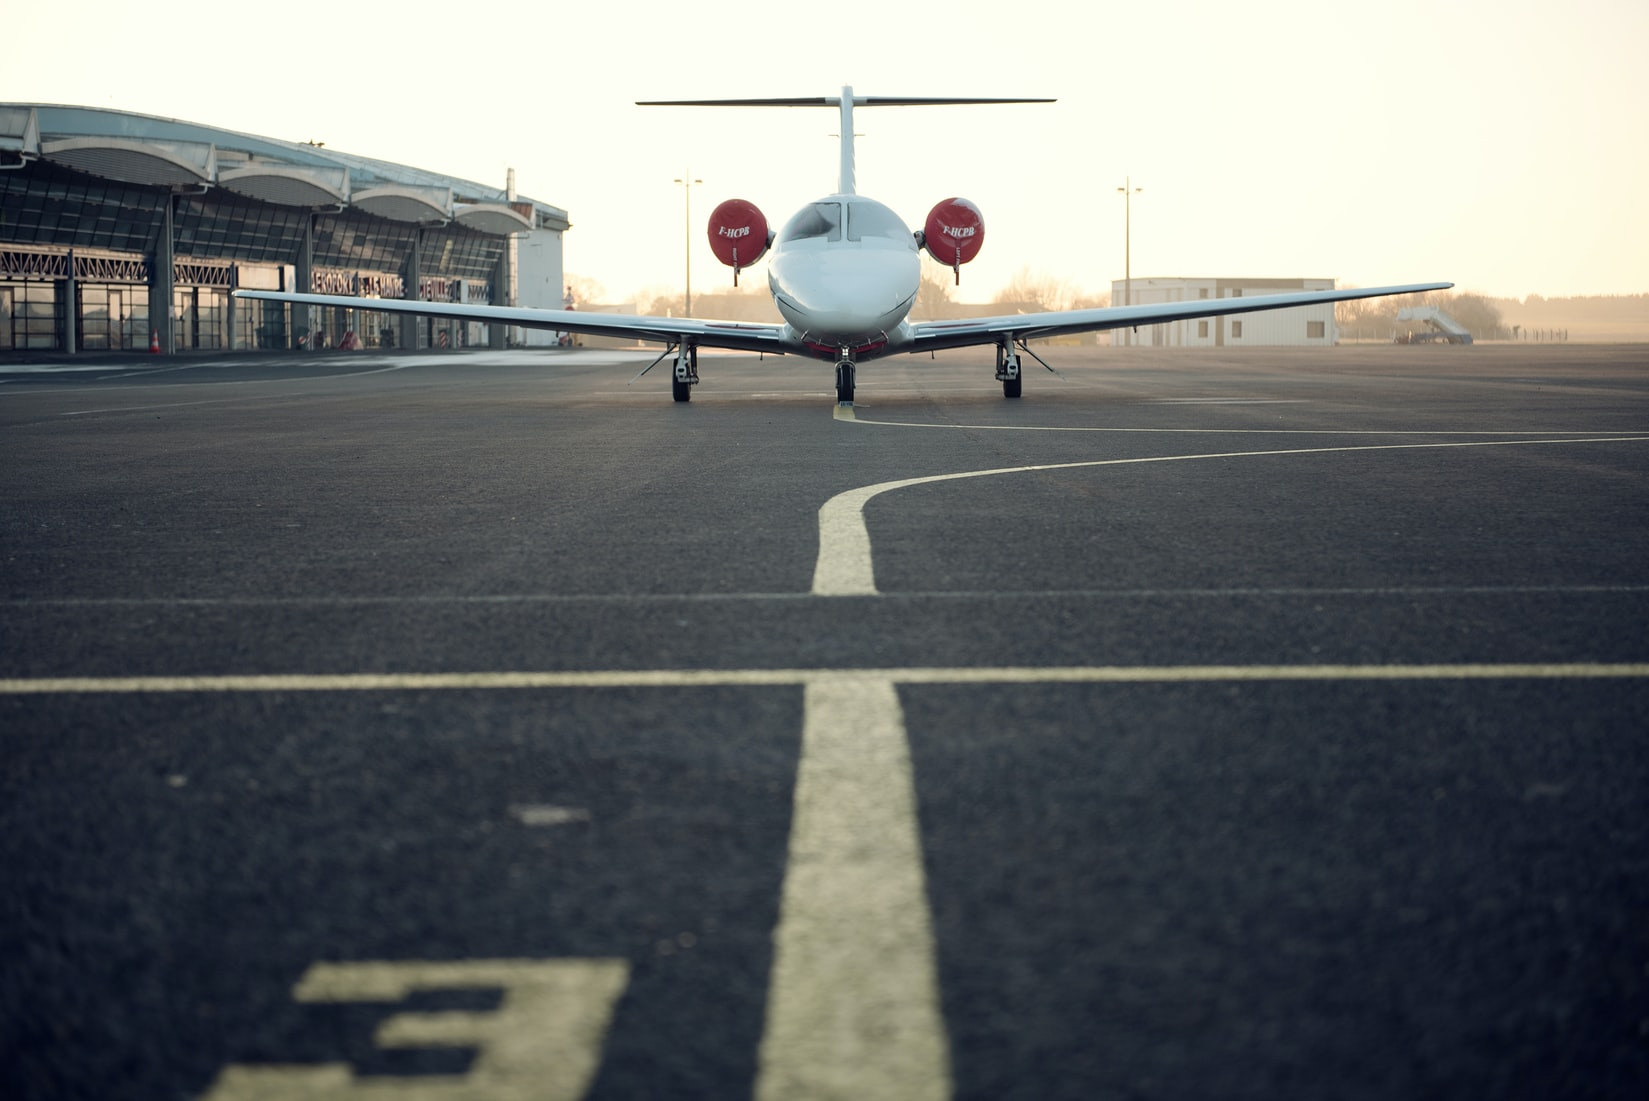 A small plane on an airport runway